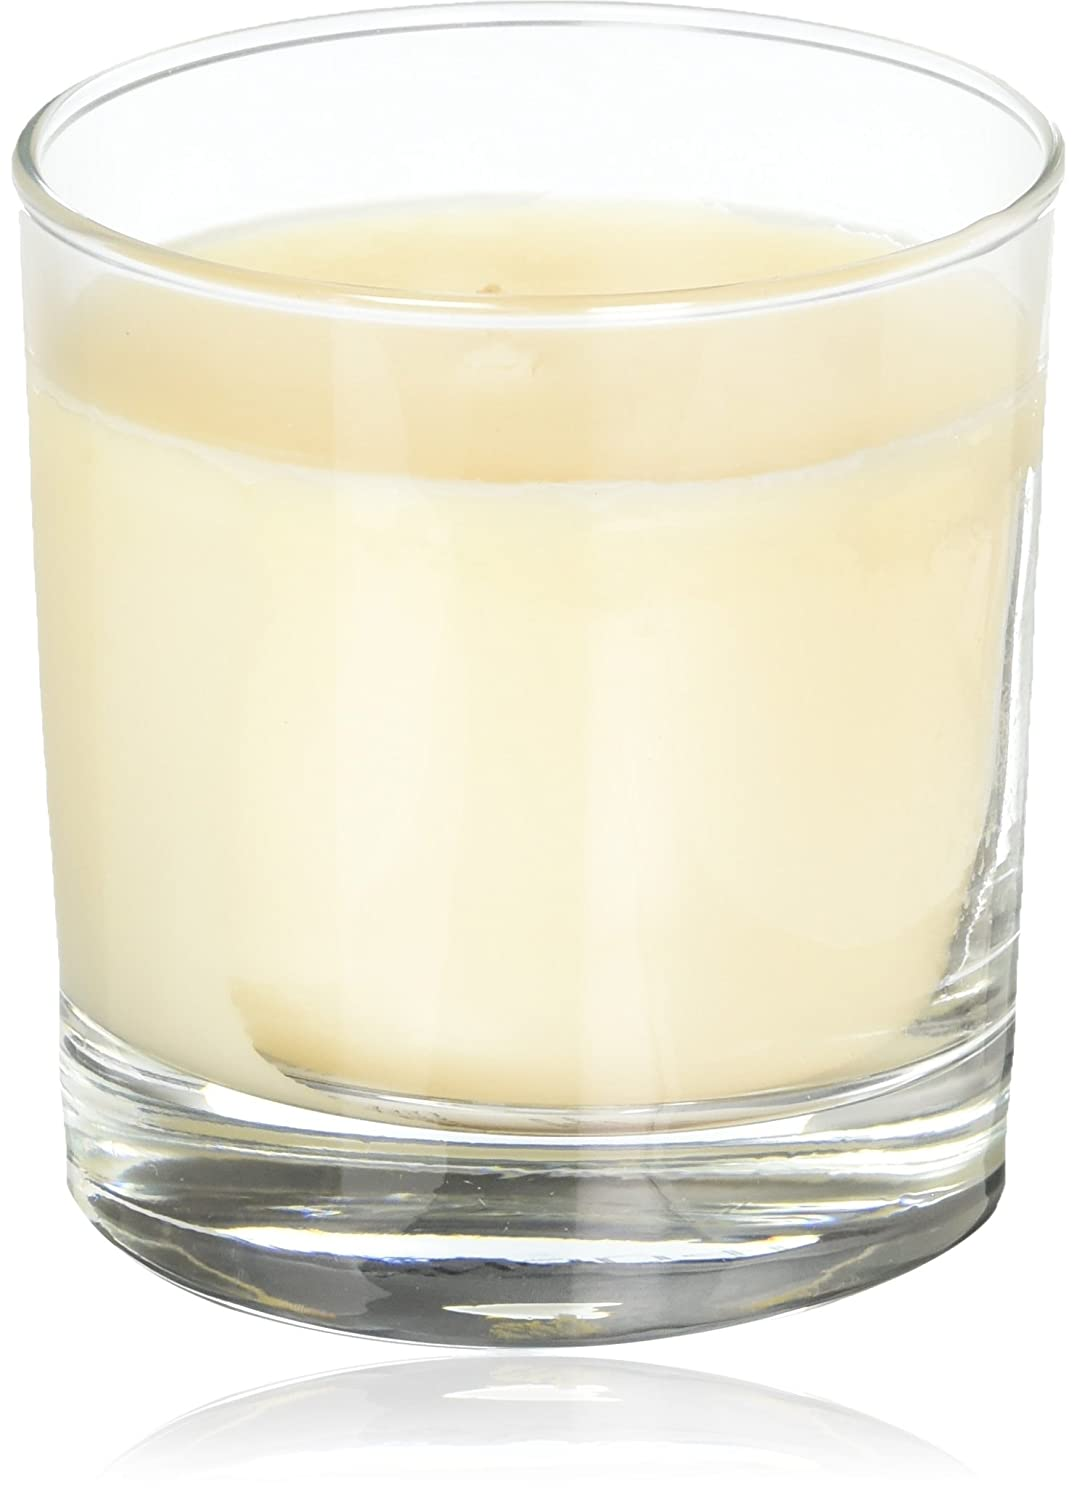 The Body Shop Vanilla Chai Candle - 200g